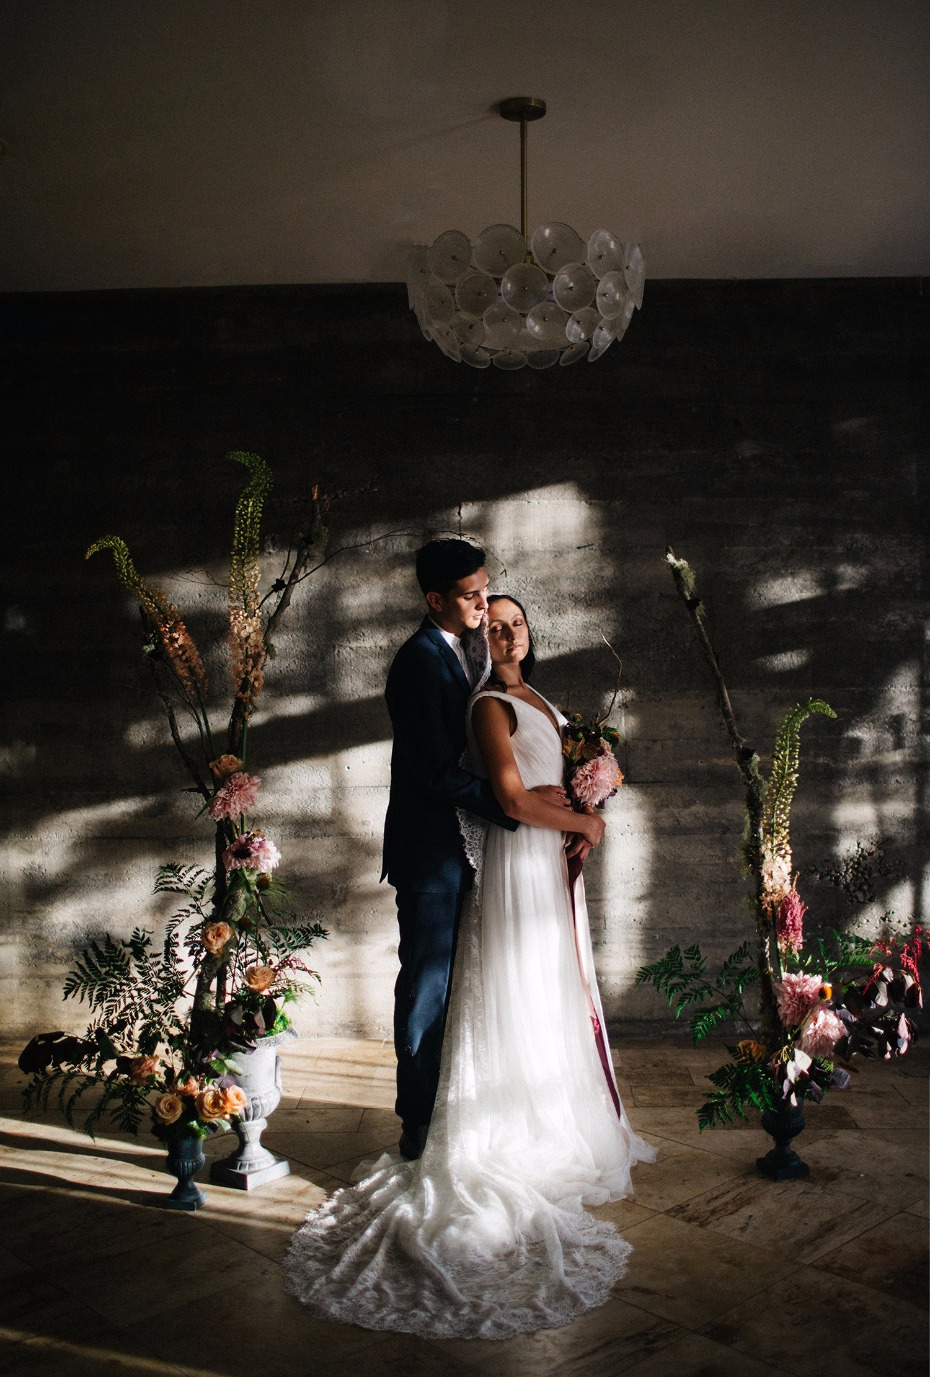 Natural lighting for an elegant ceremony